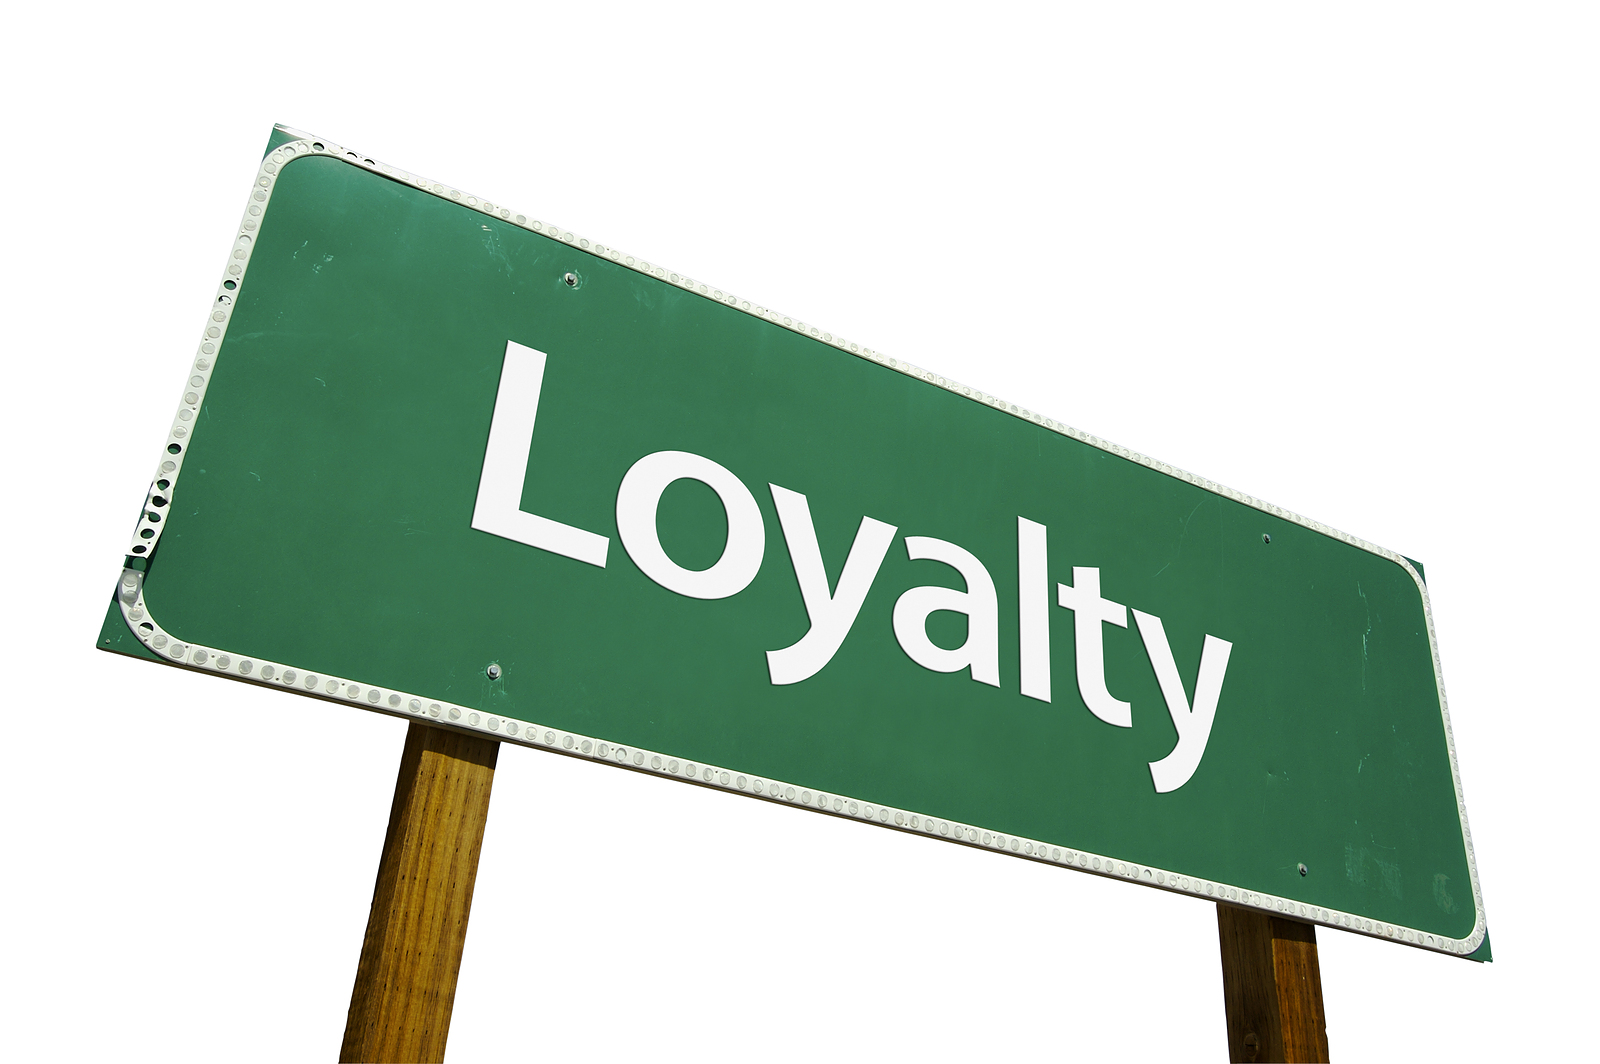 Voice Over & Lessons in Loyalty